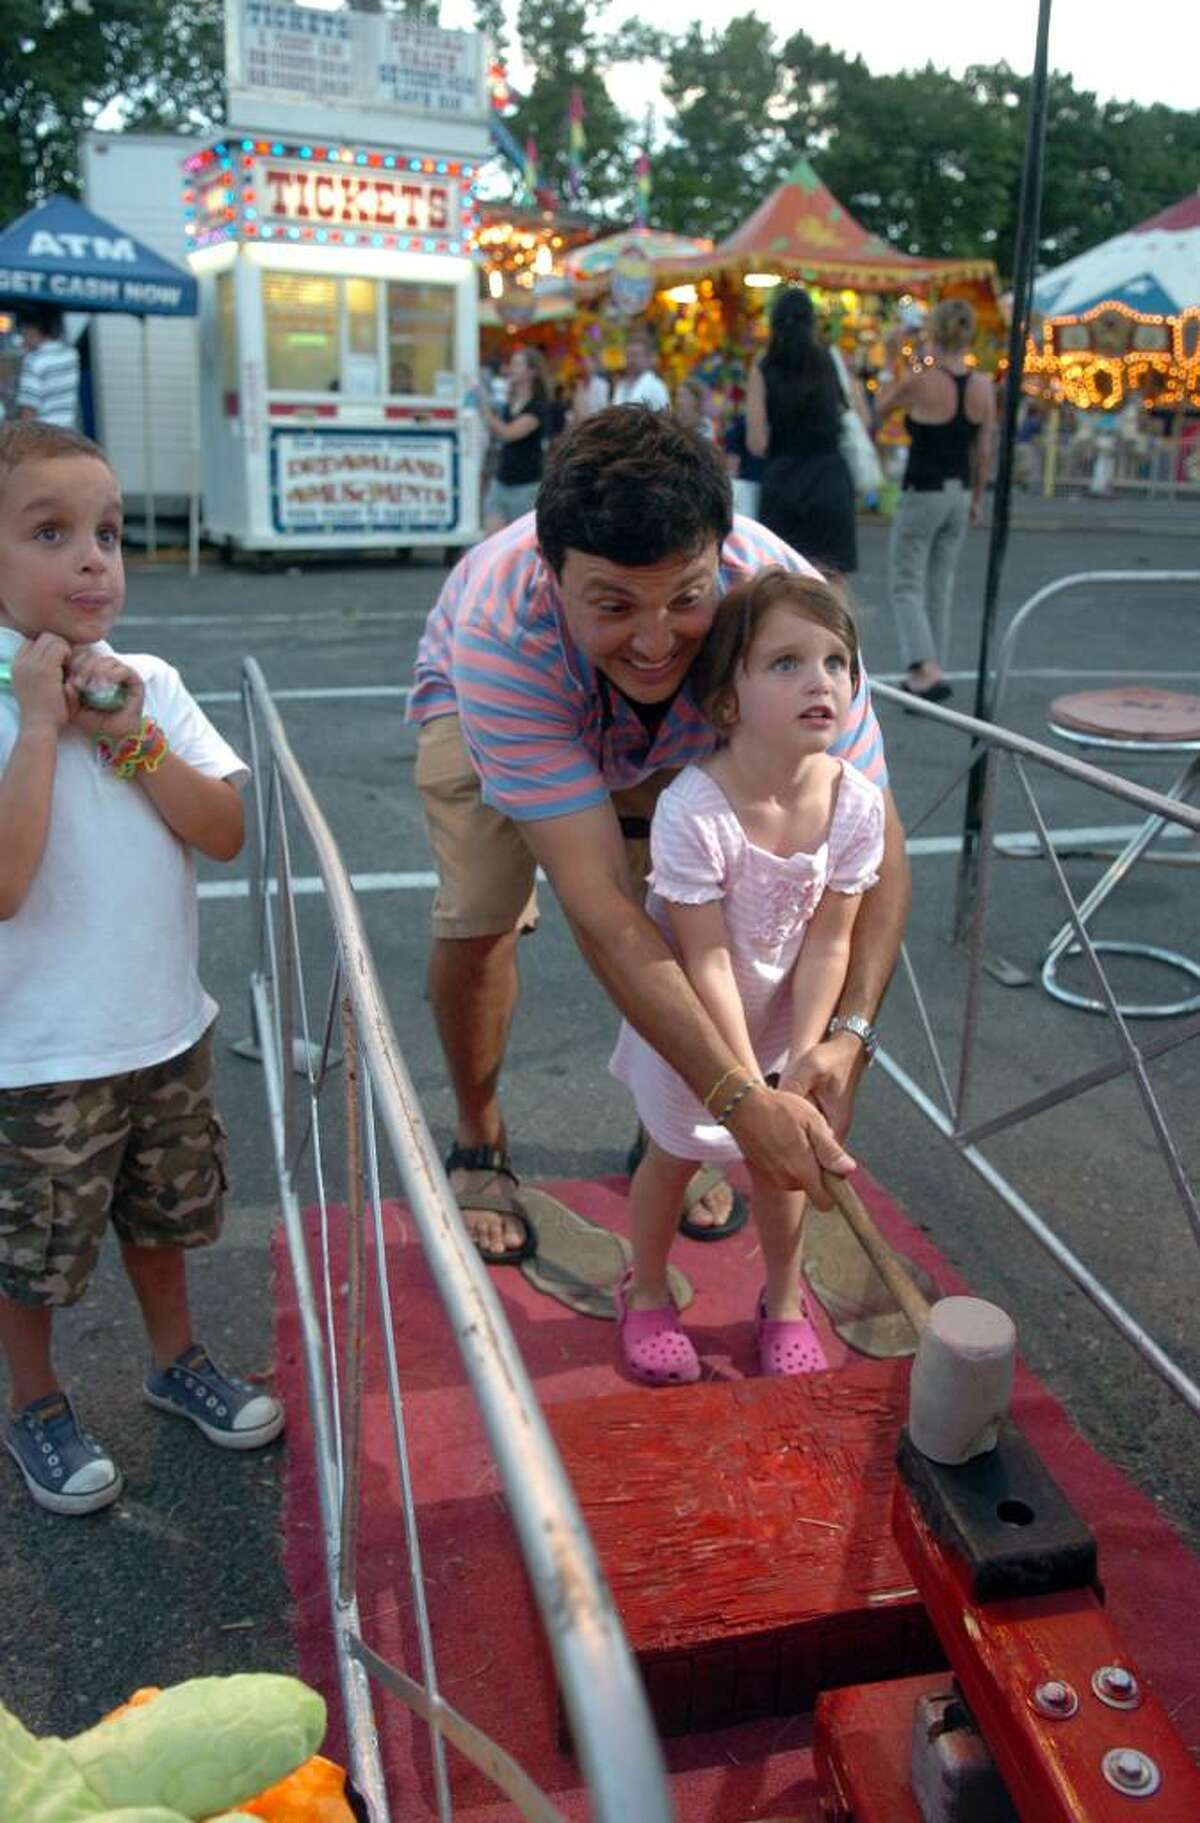 Highlights from the 27th Annual Festival Italiano in Westport, Conn. on Thursday July 08, 2010. matt Spengler, of Fairfield, helps his daughter Caroline, 4, with the hammer so she could hit the bell and win a prize. At left is Matt's son James, 5.